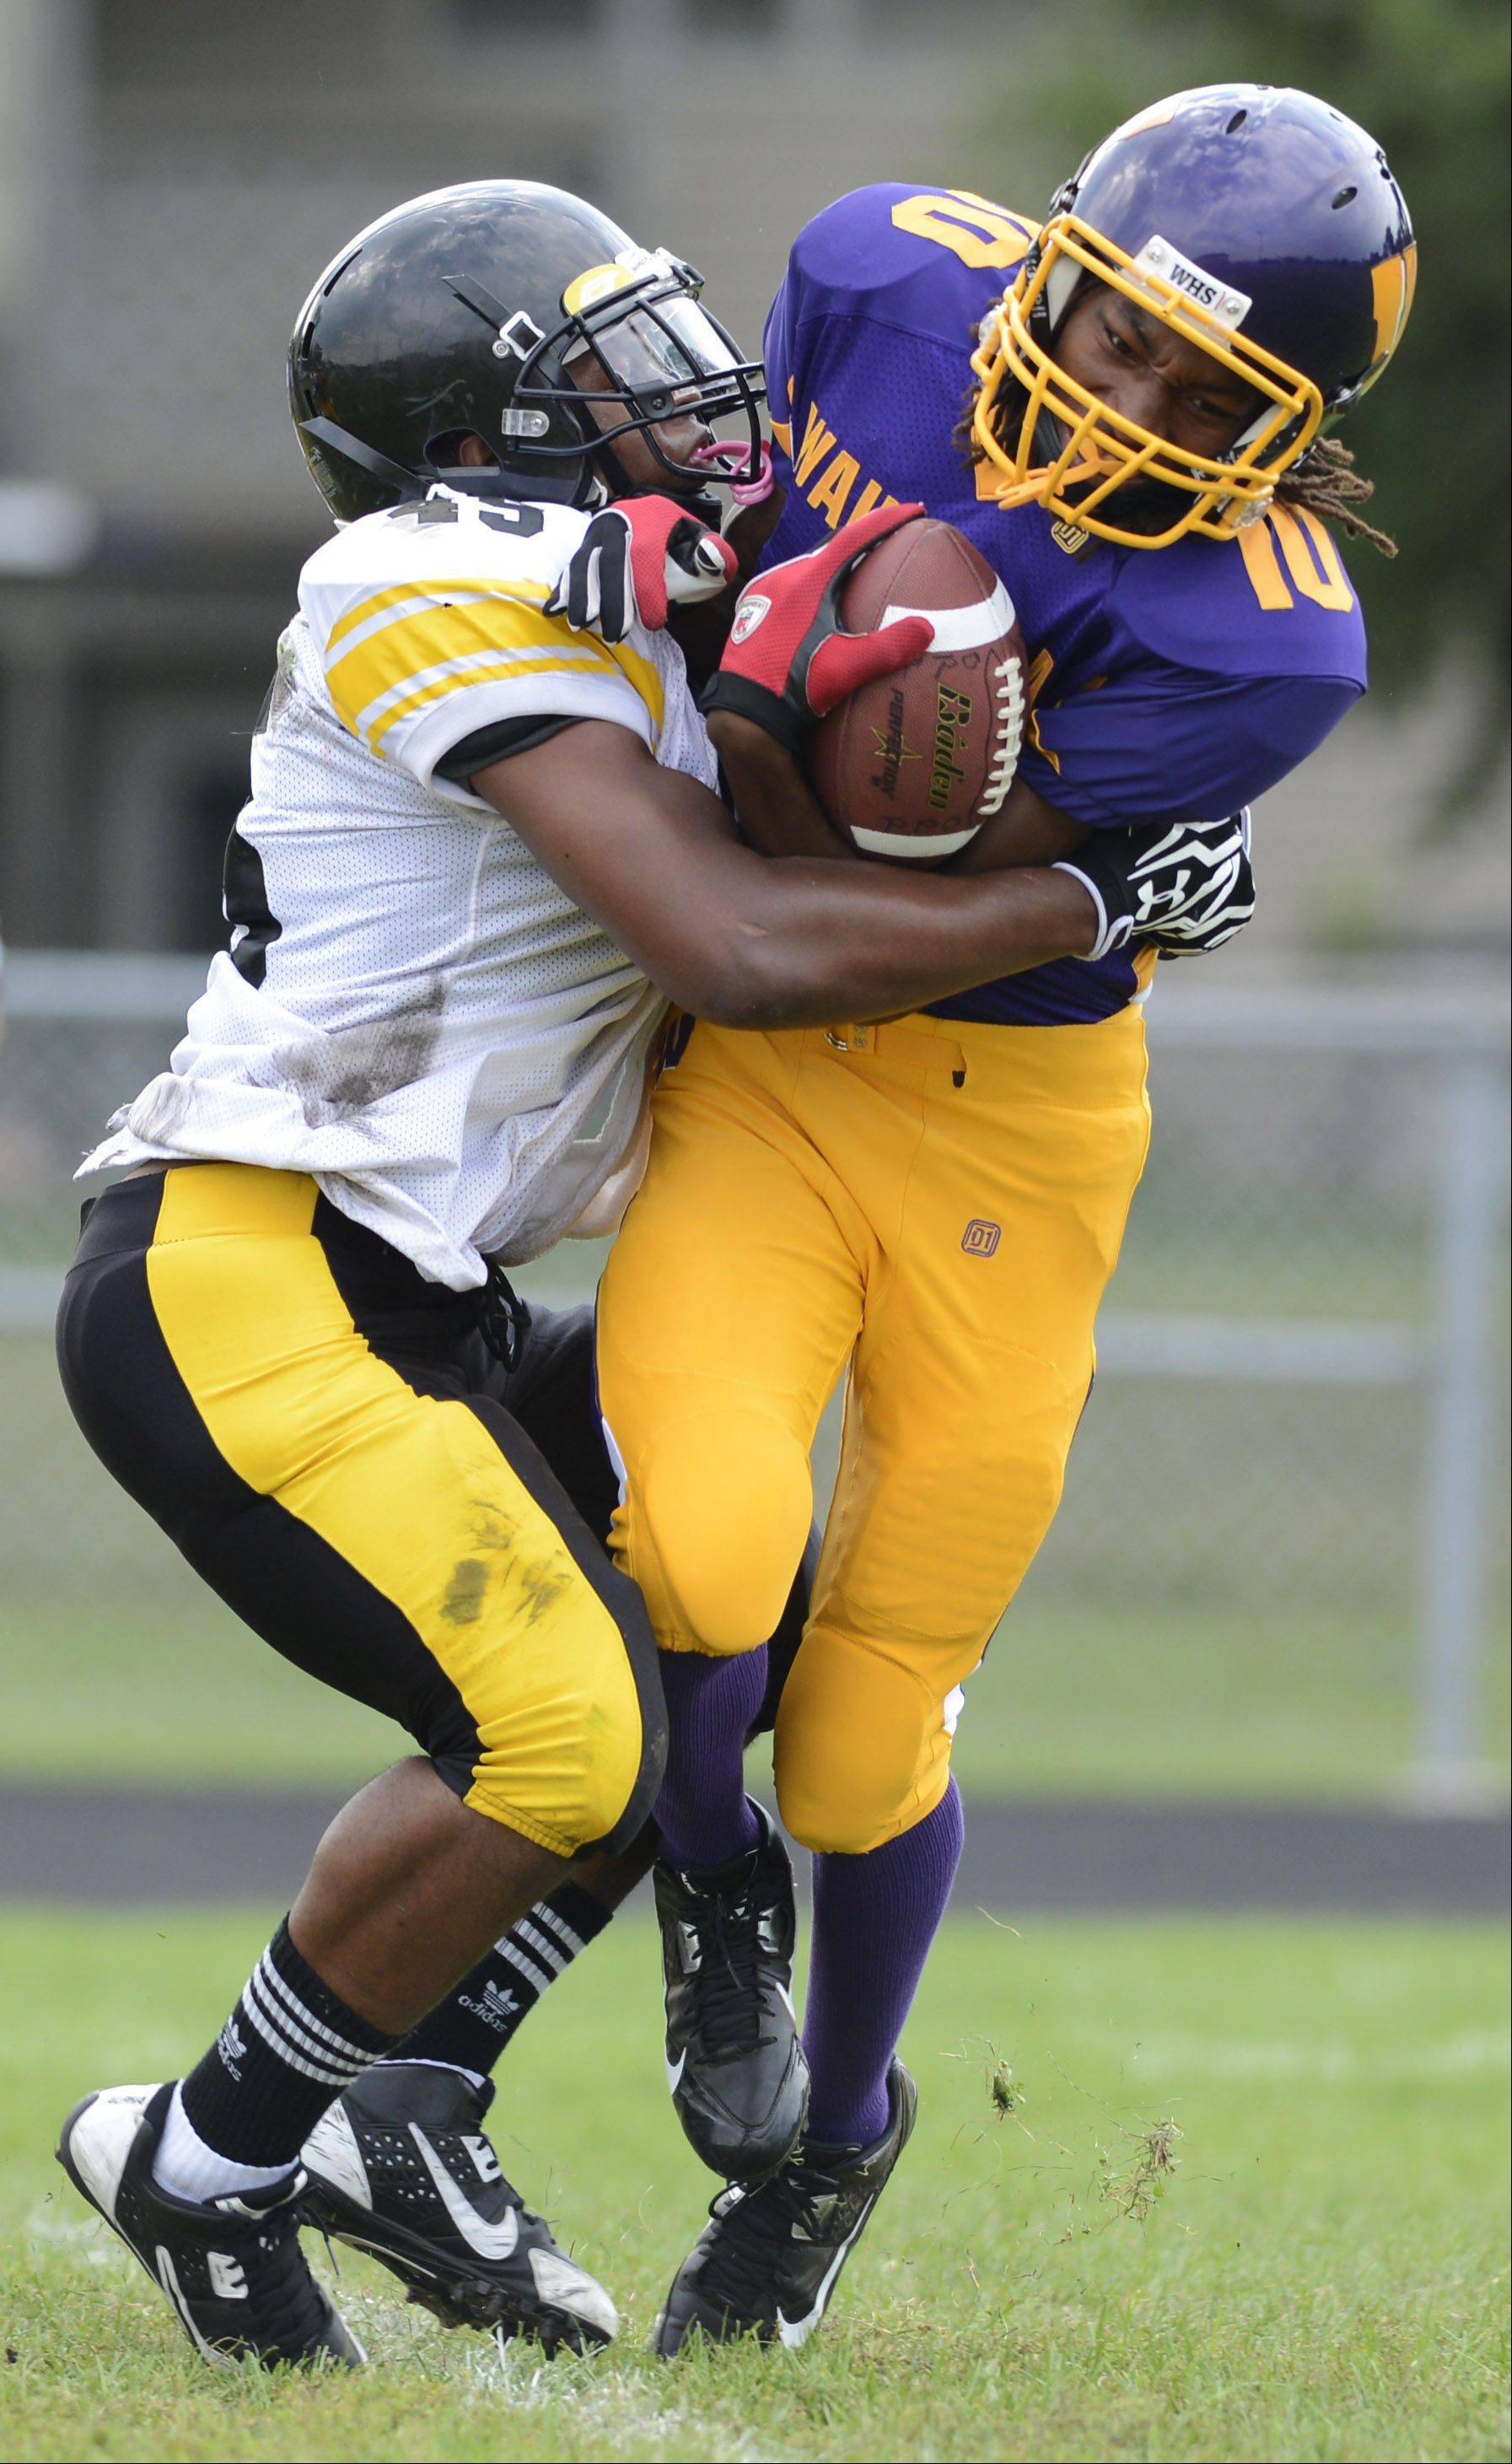 Wauconda's Imsa Bowman, right, is tackled by Chicago Orr's Daniel Sanja during Saturday's football game in Wauconda.